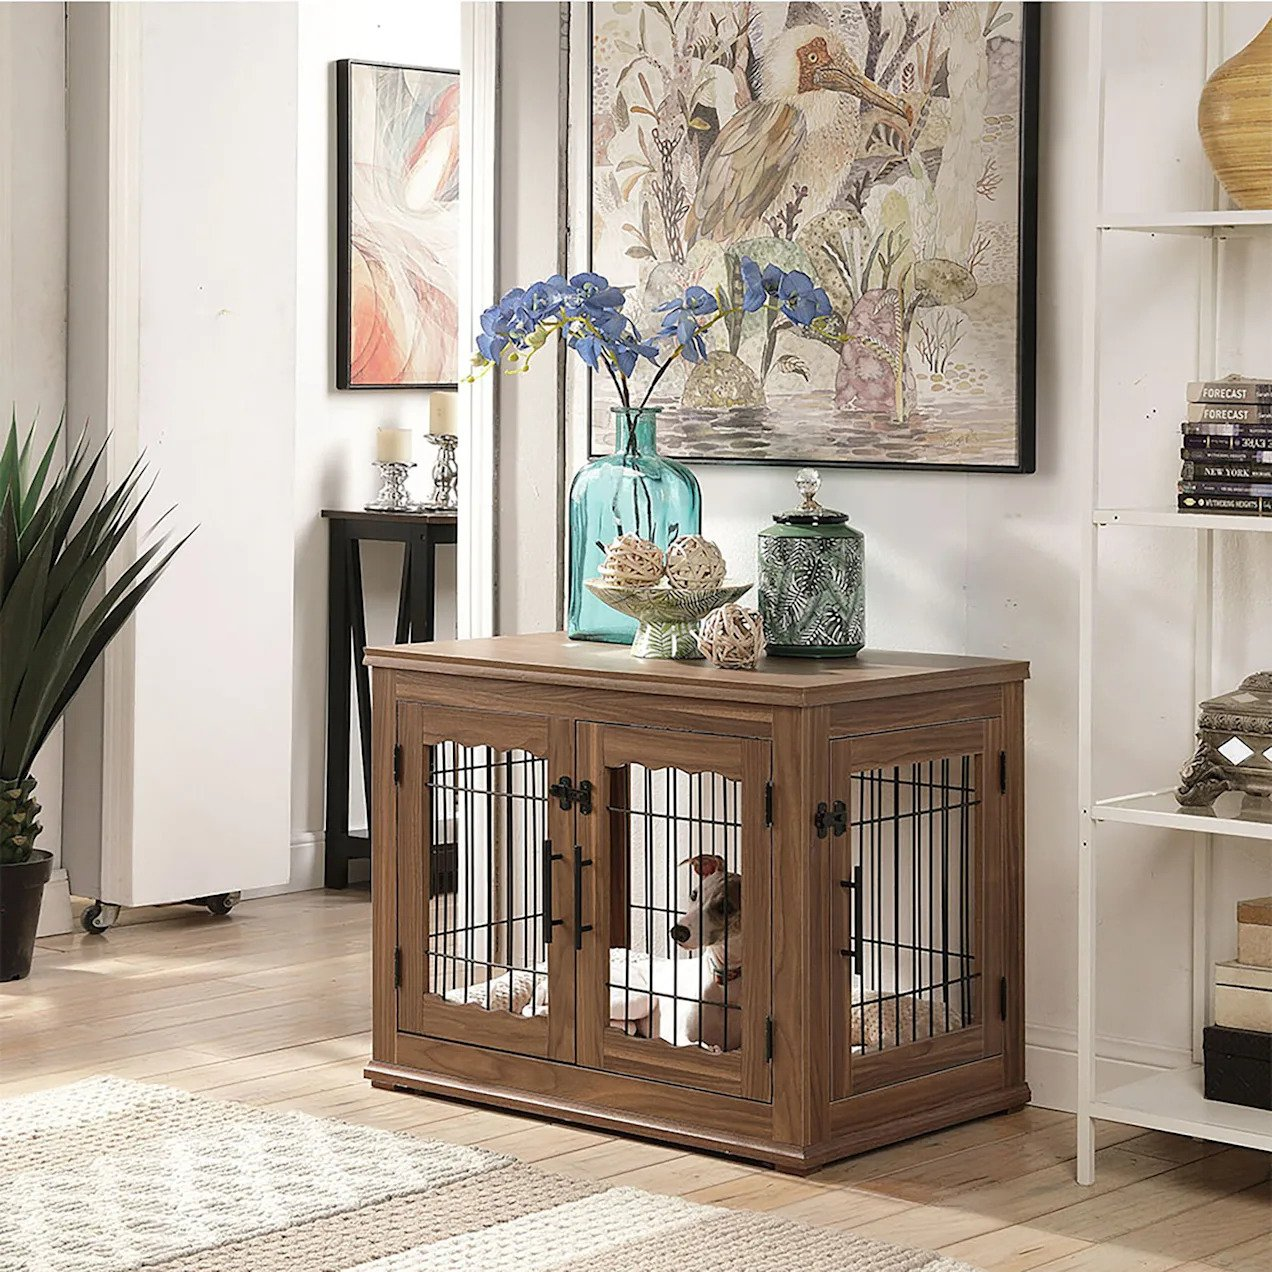 UniPaws Crate Wooden End Table with Wire Dog Kennel with Bed in Walnut